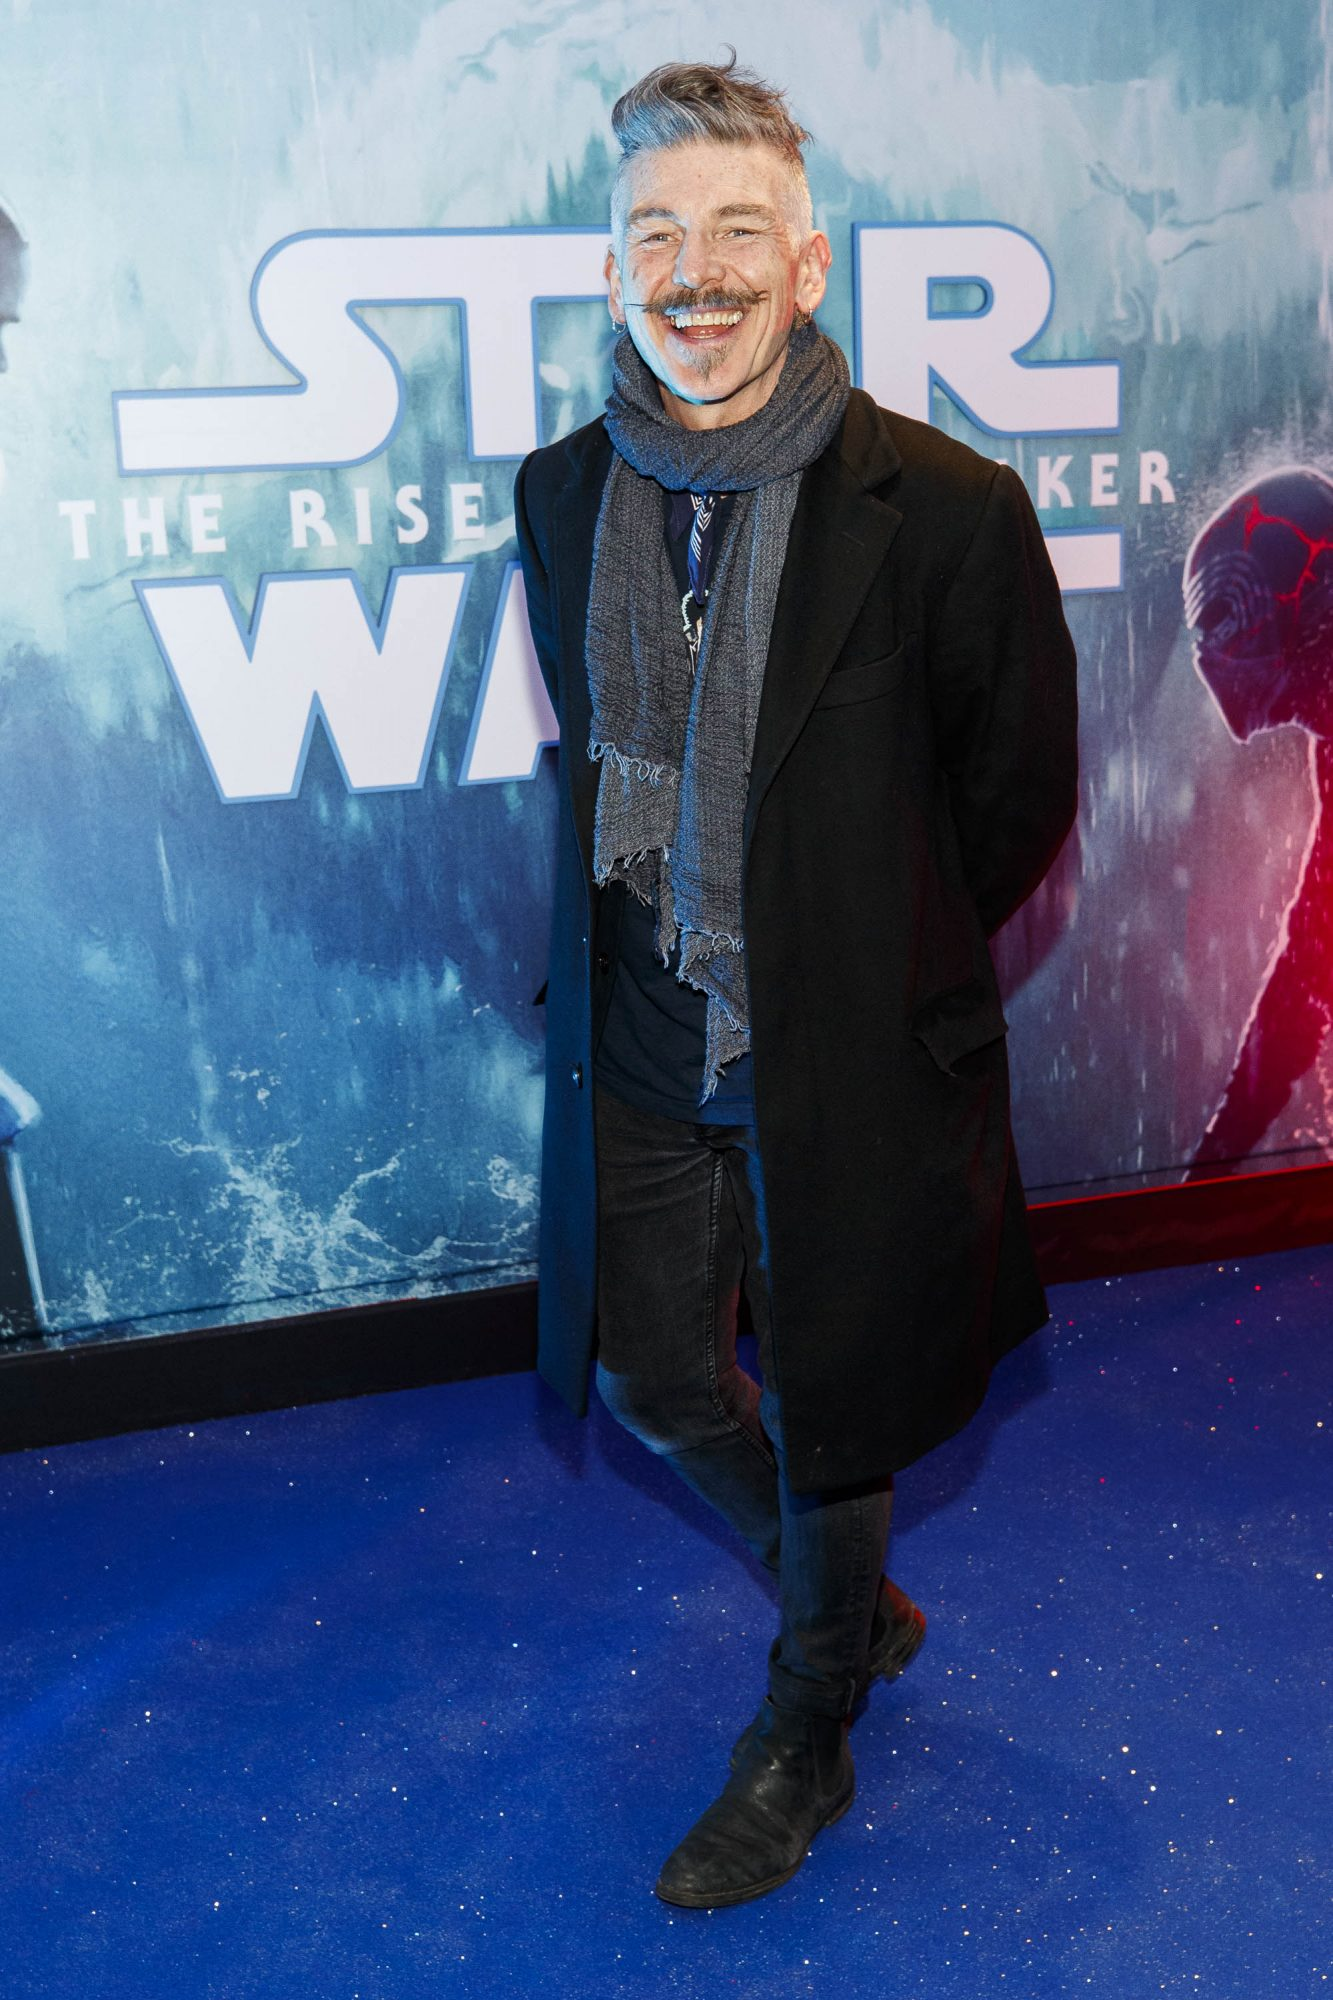 Jerry Fish pictured at the Irish premiere screening of Star Wars: The Rise of Skywalker at Cineworld, Dublin. Picture: Andres Poveda